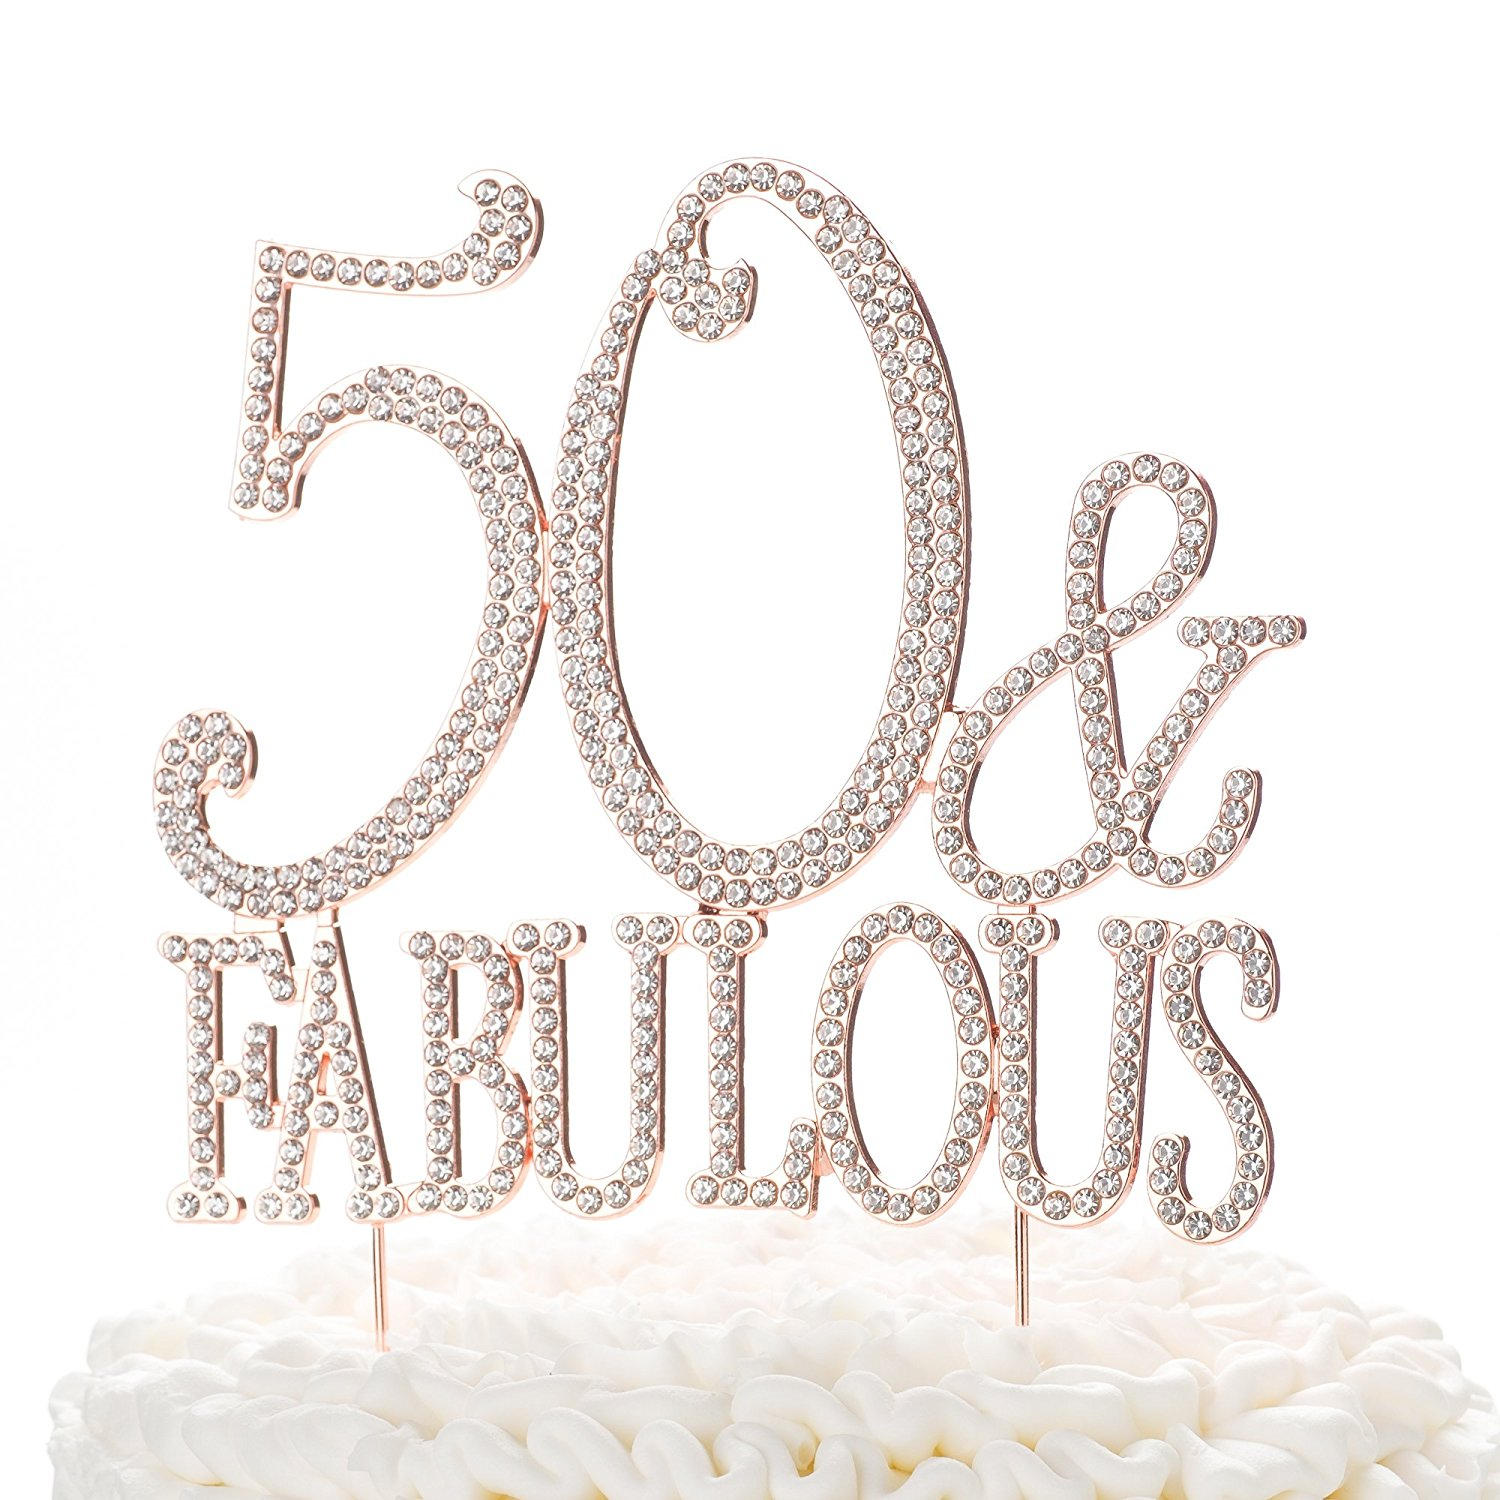 Ella Celebration 50 Fabulous Cake Topper For 50th Birthday Party Rose Gold Decoration Supplies